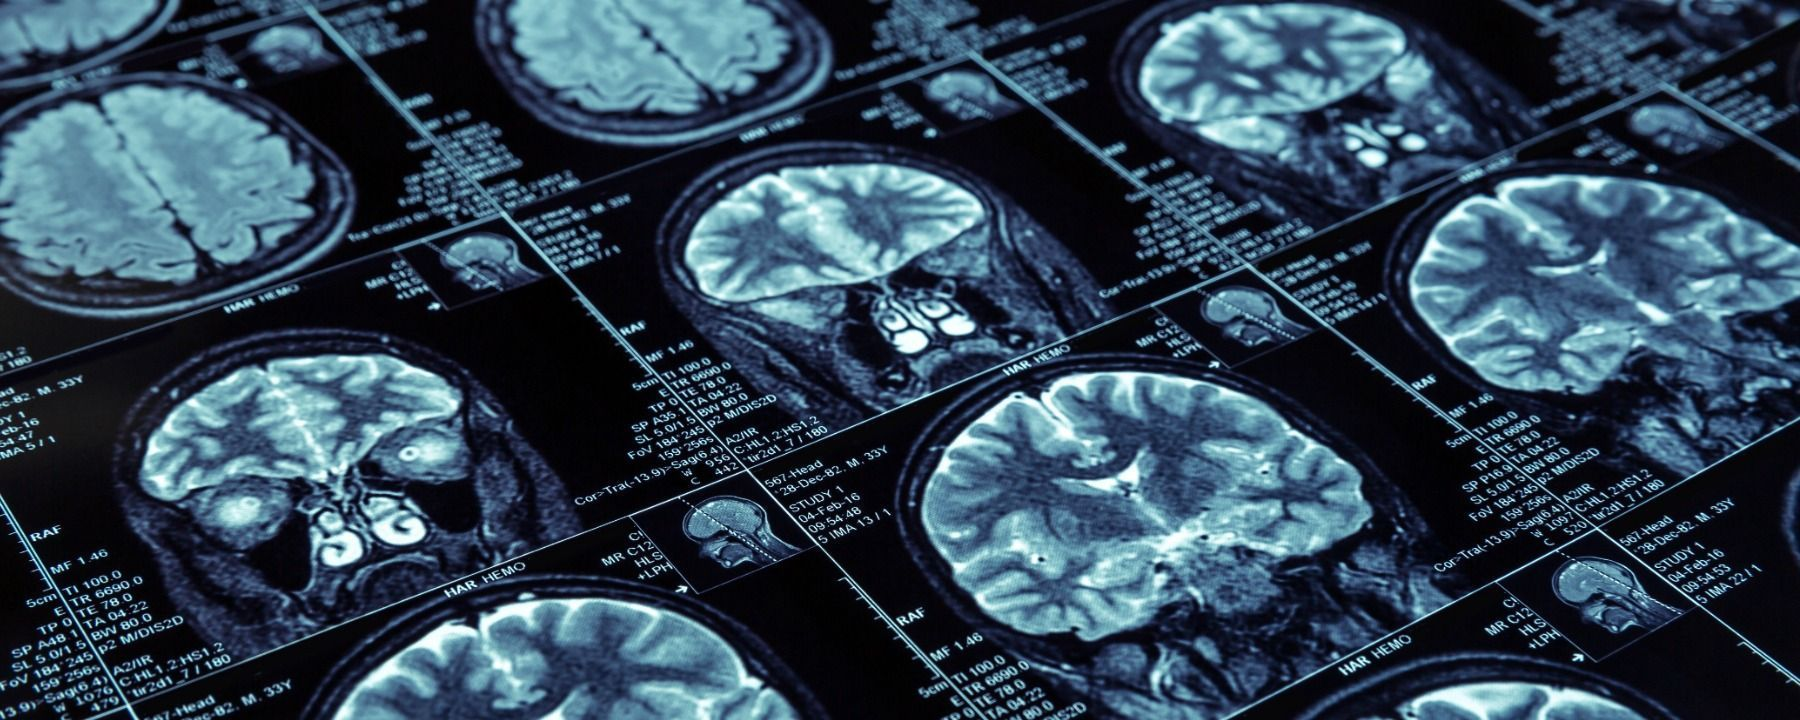 Opinion: No, AI Will Not Replace Radiologists